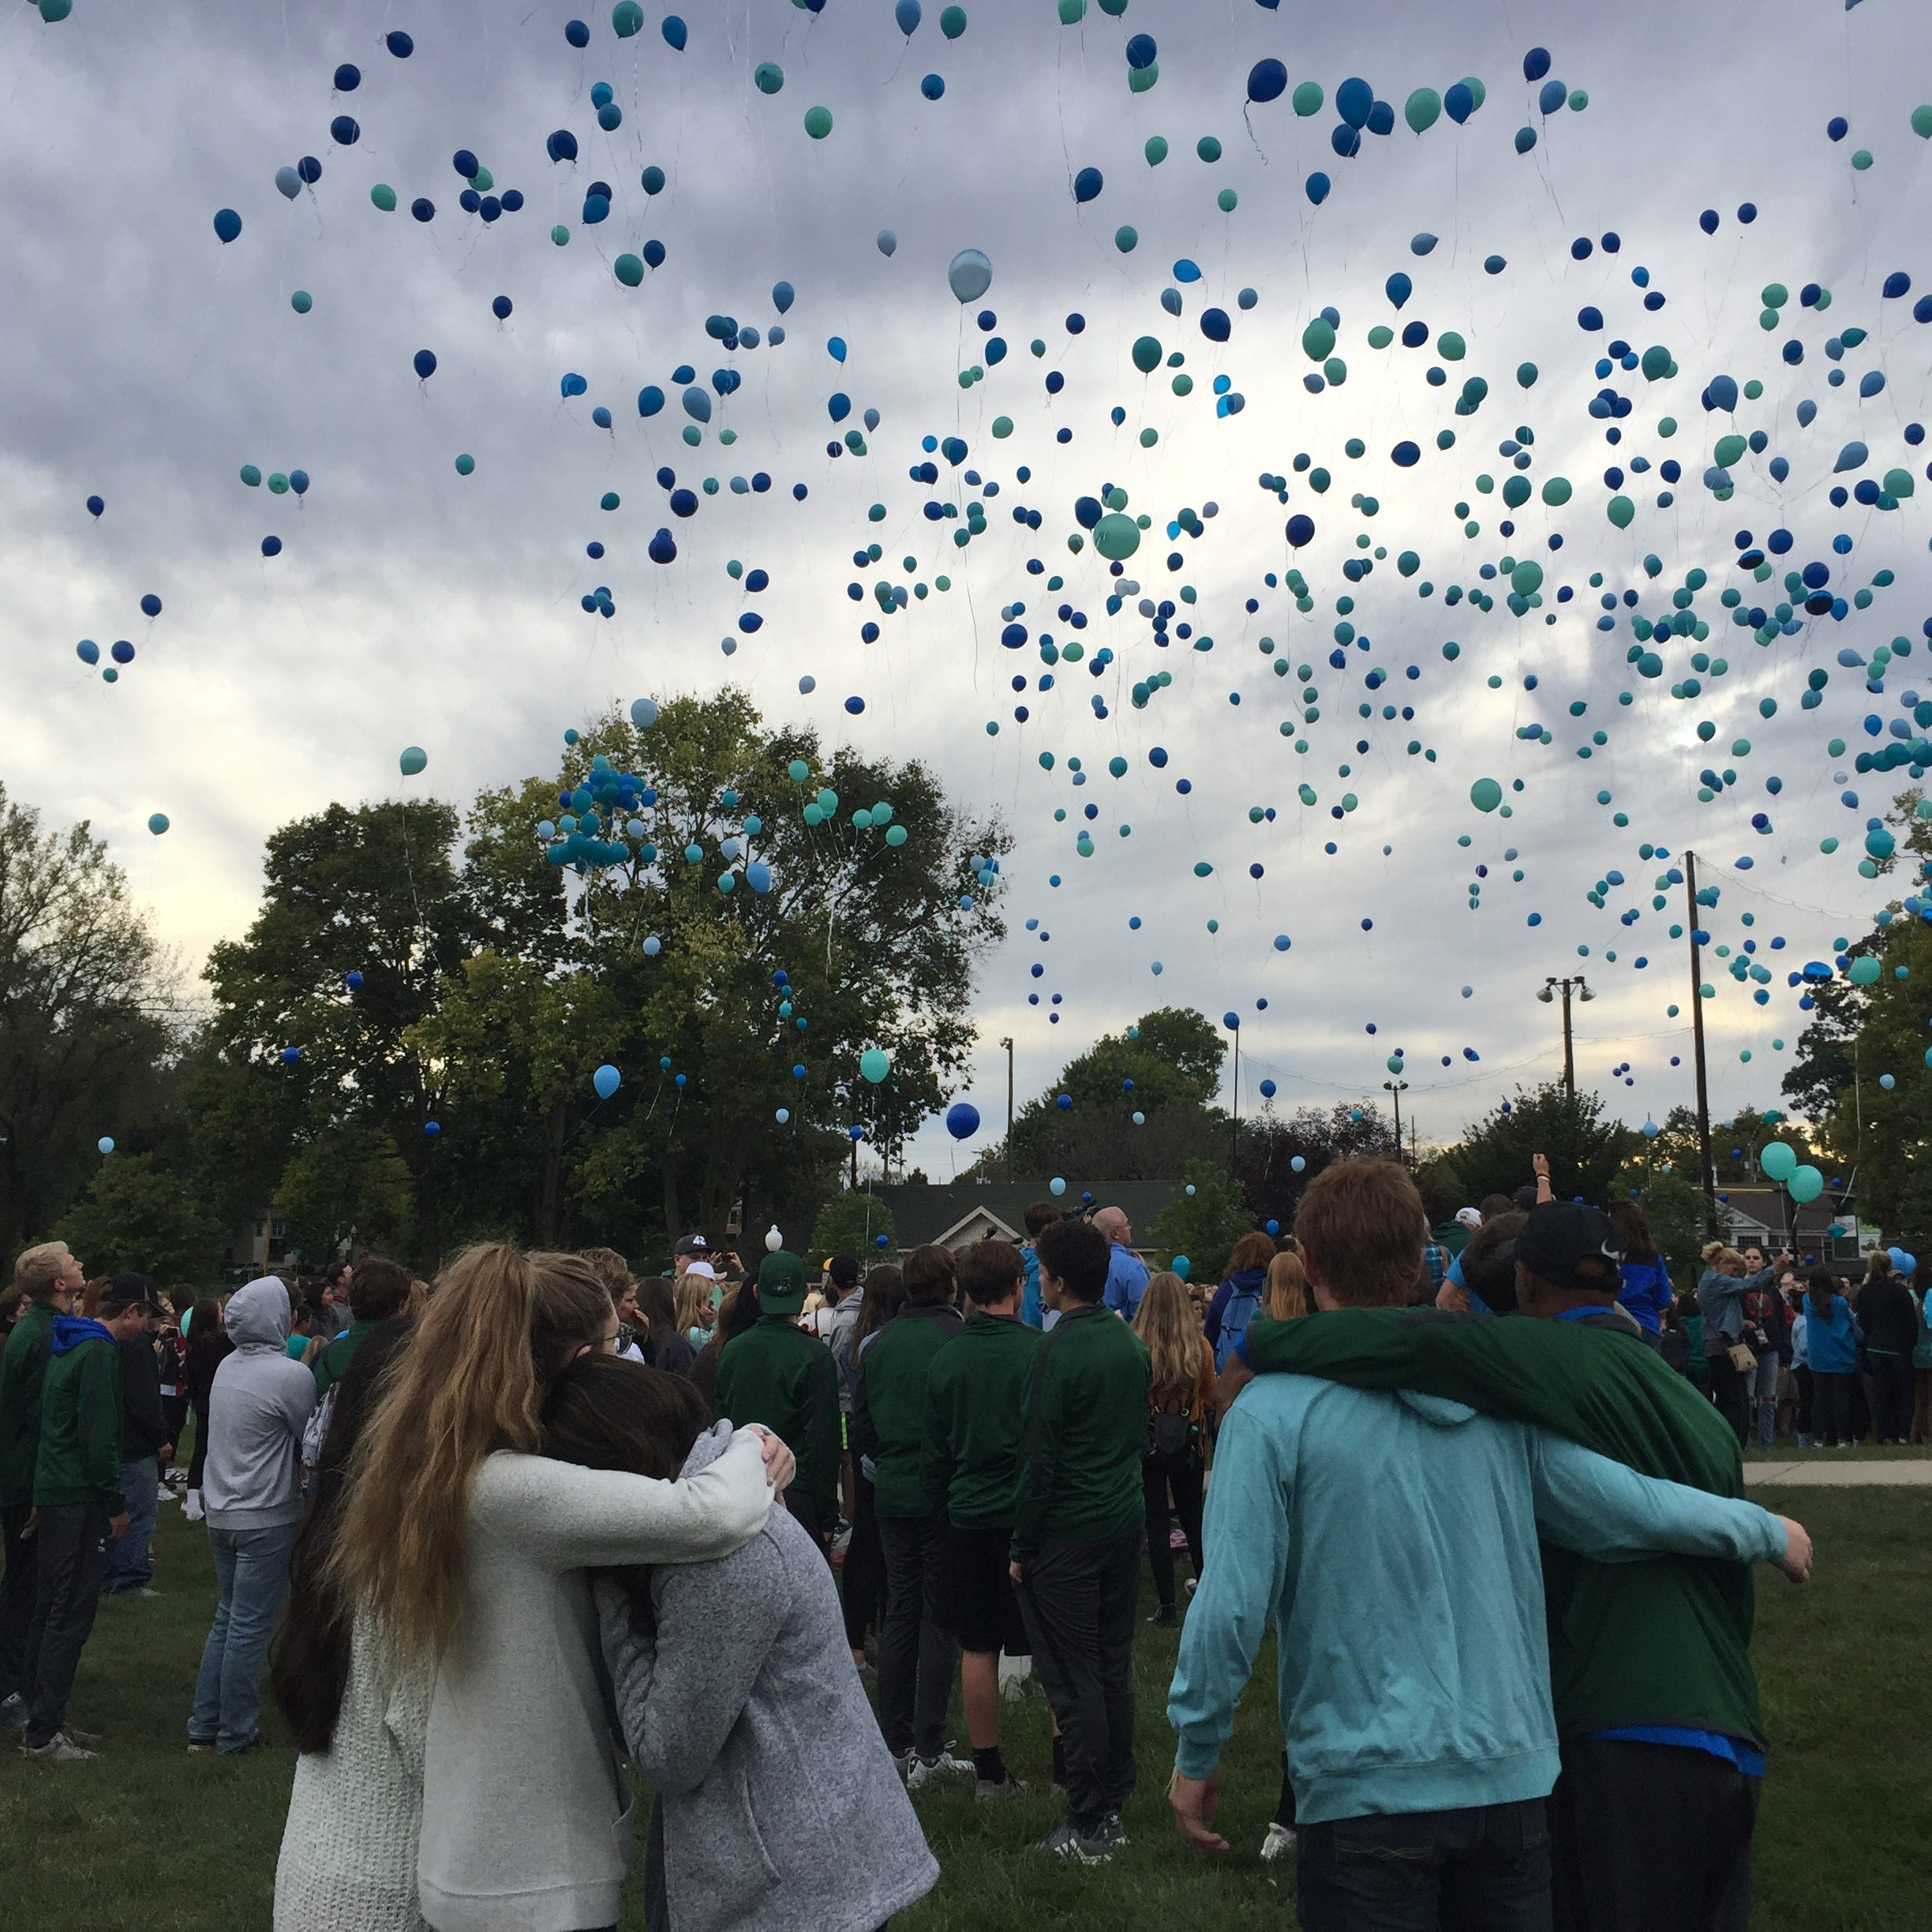 Funeral services set for Zionsville teen victims of suspected double murder-suicide